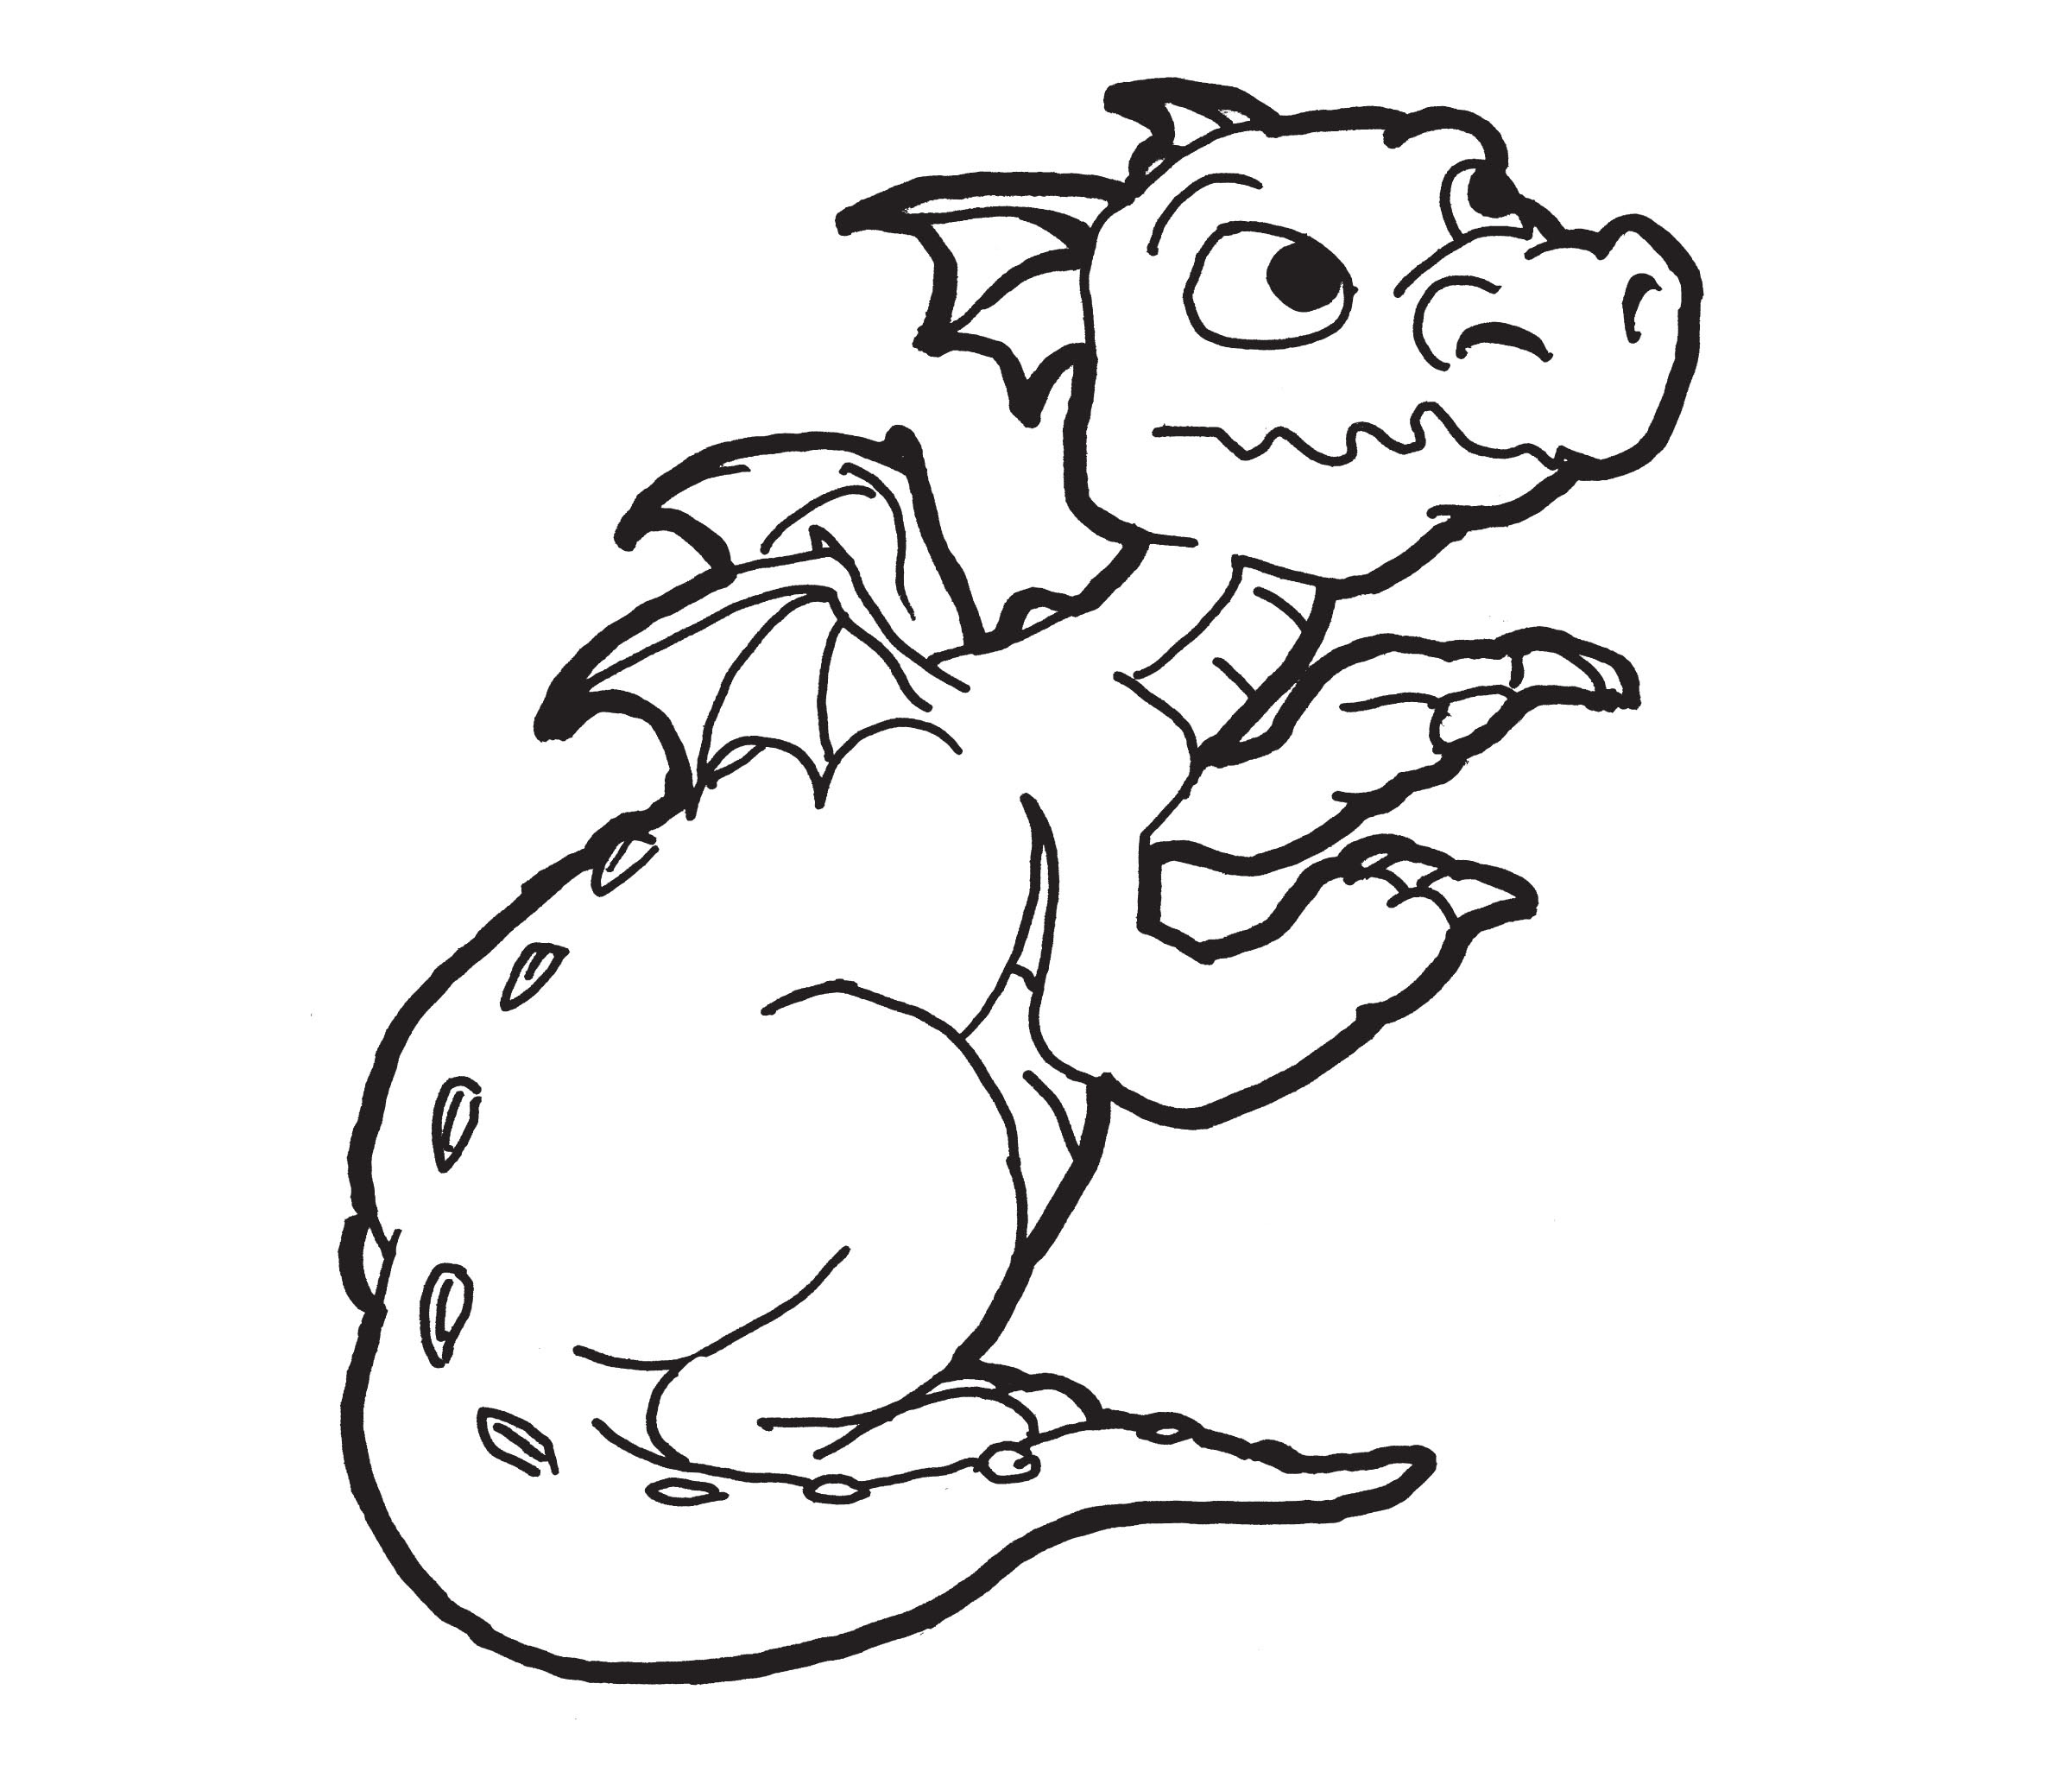 Chinese Dragon Coloring Pages For Kids Drawing With Crayons